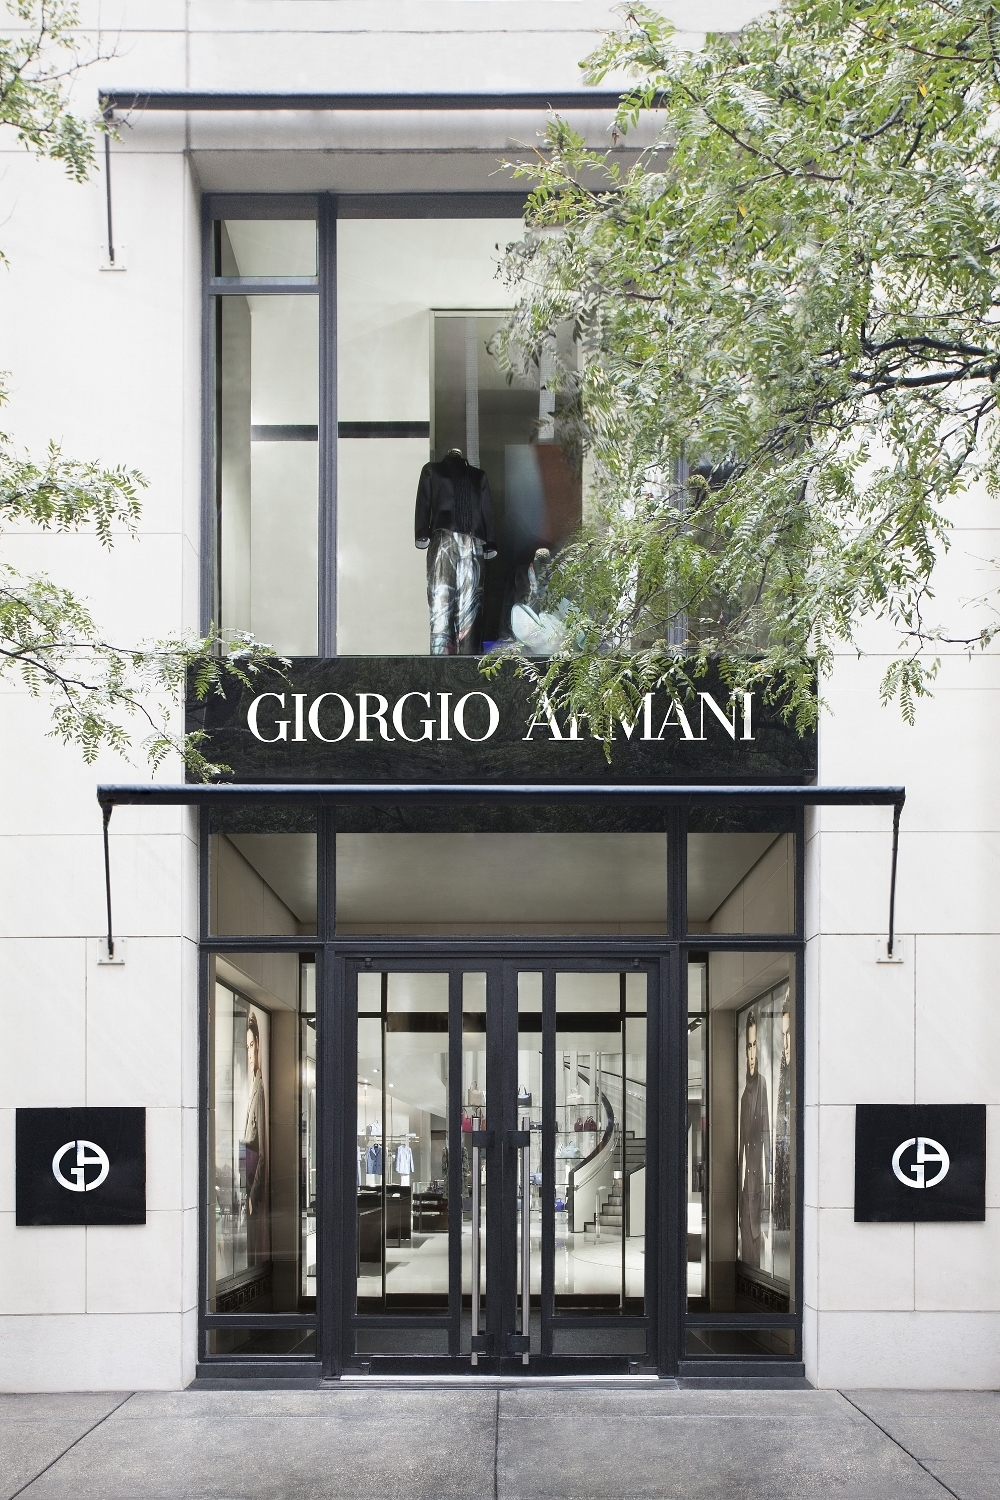 Giorgio Armani in Chicago on Oak Street